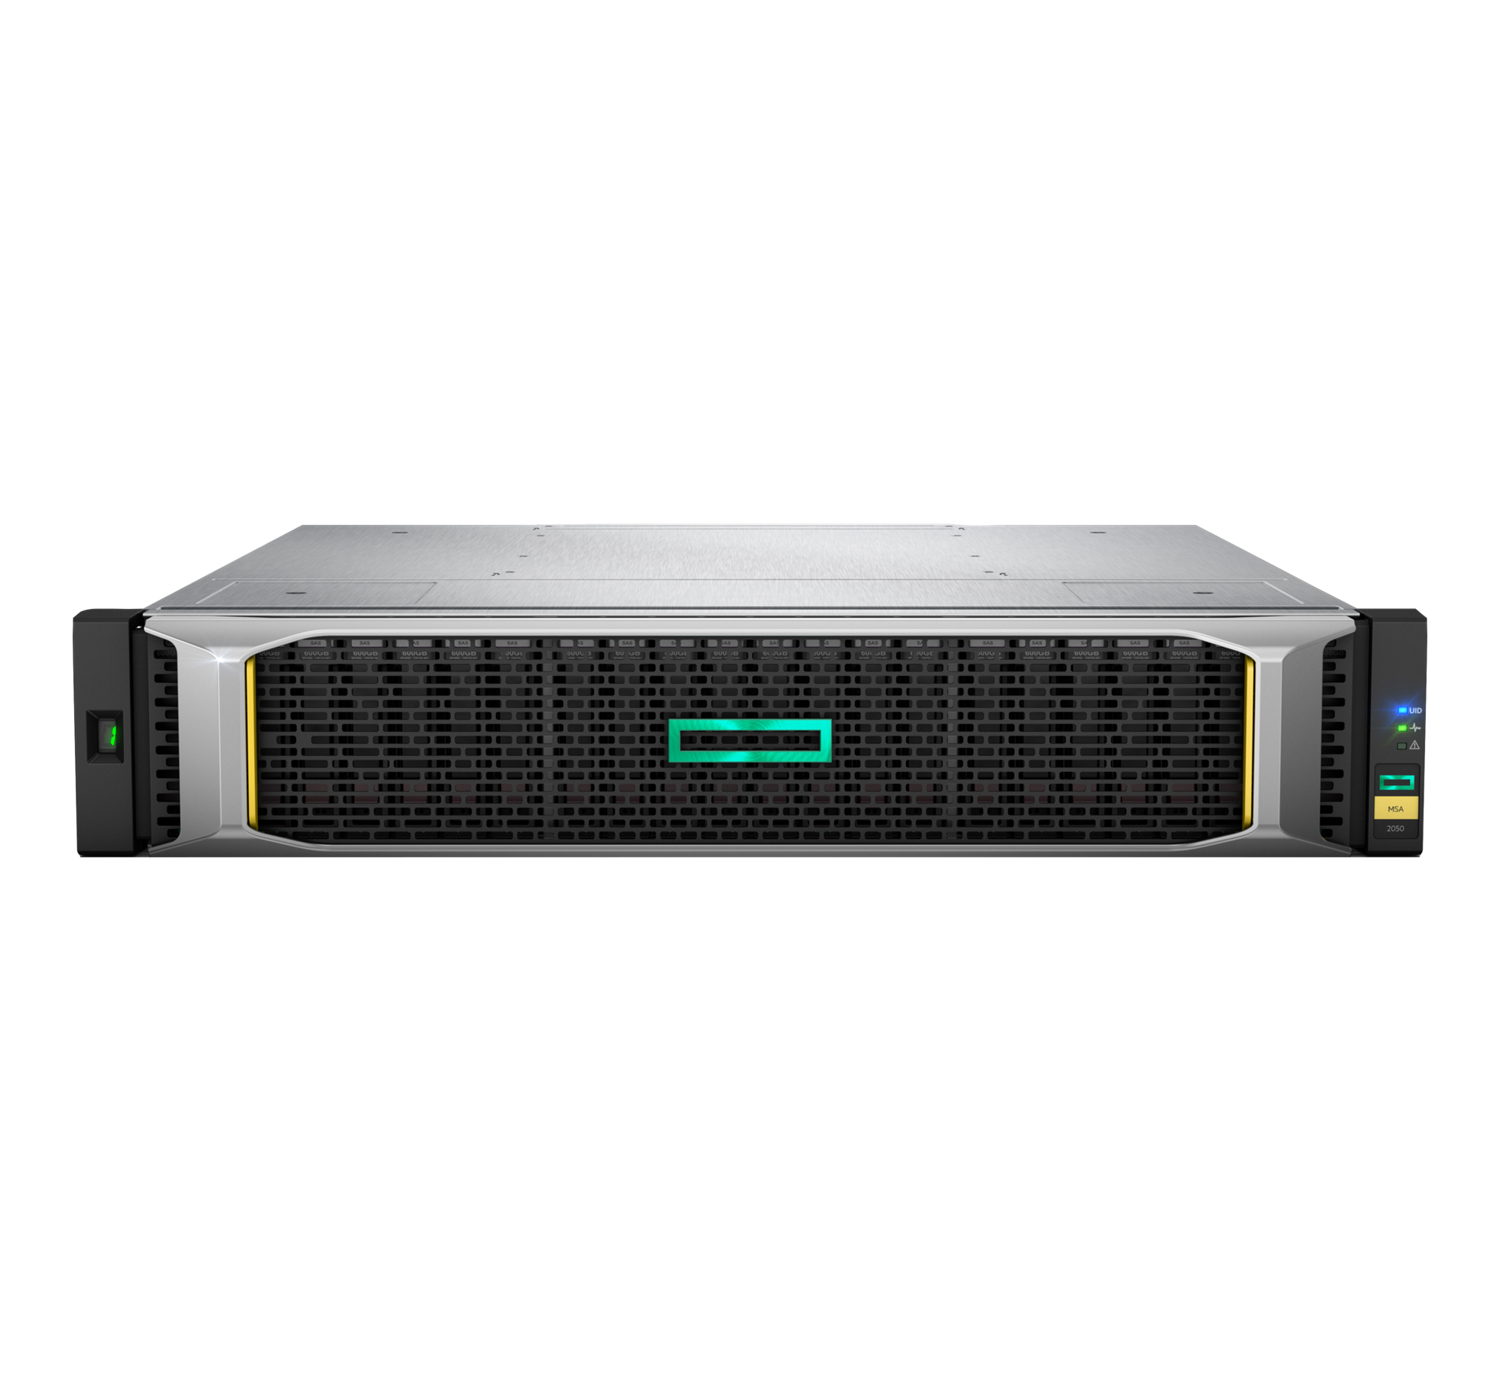 HEWLETT PACKARD ENTERPRISE MSA2050 SAN LFF Disk Enclosure - 12Bays (SAS-3) - rack